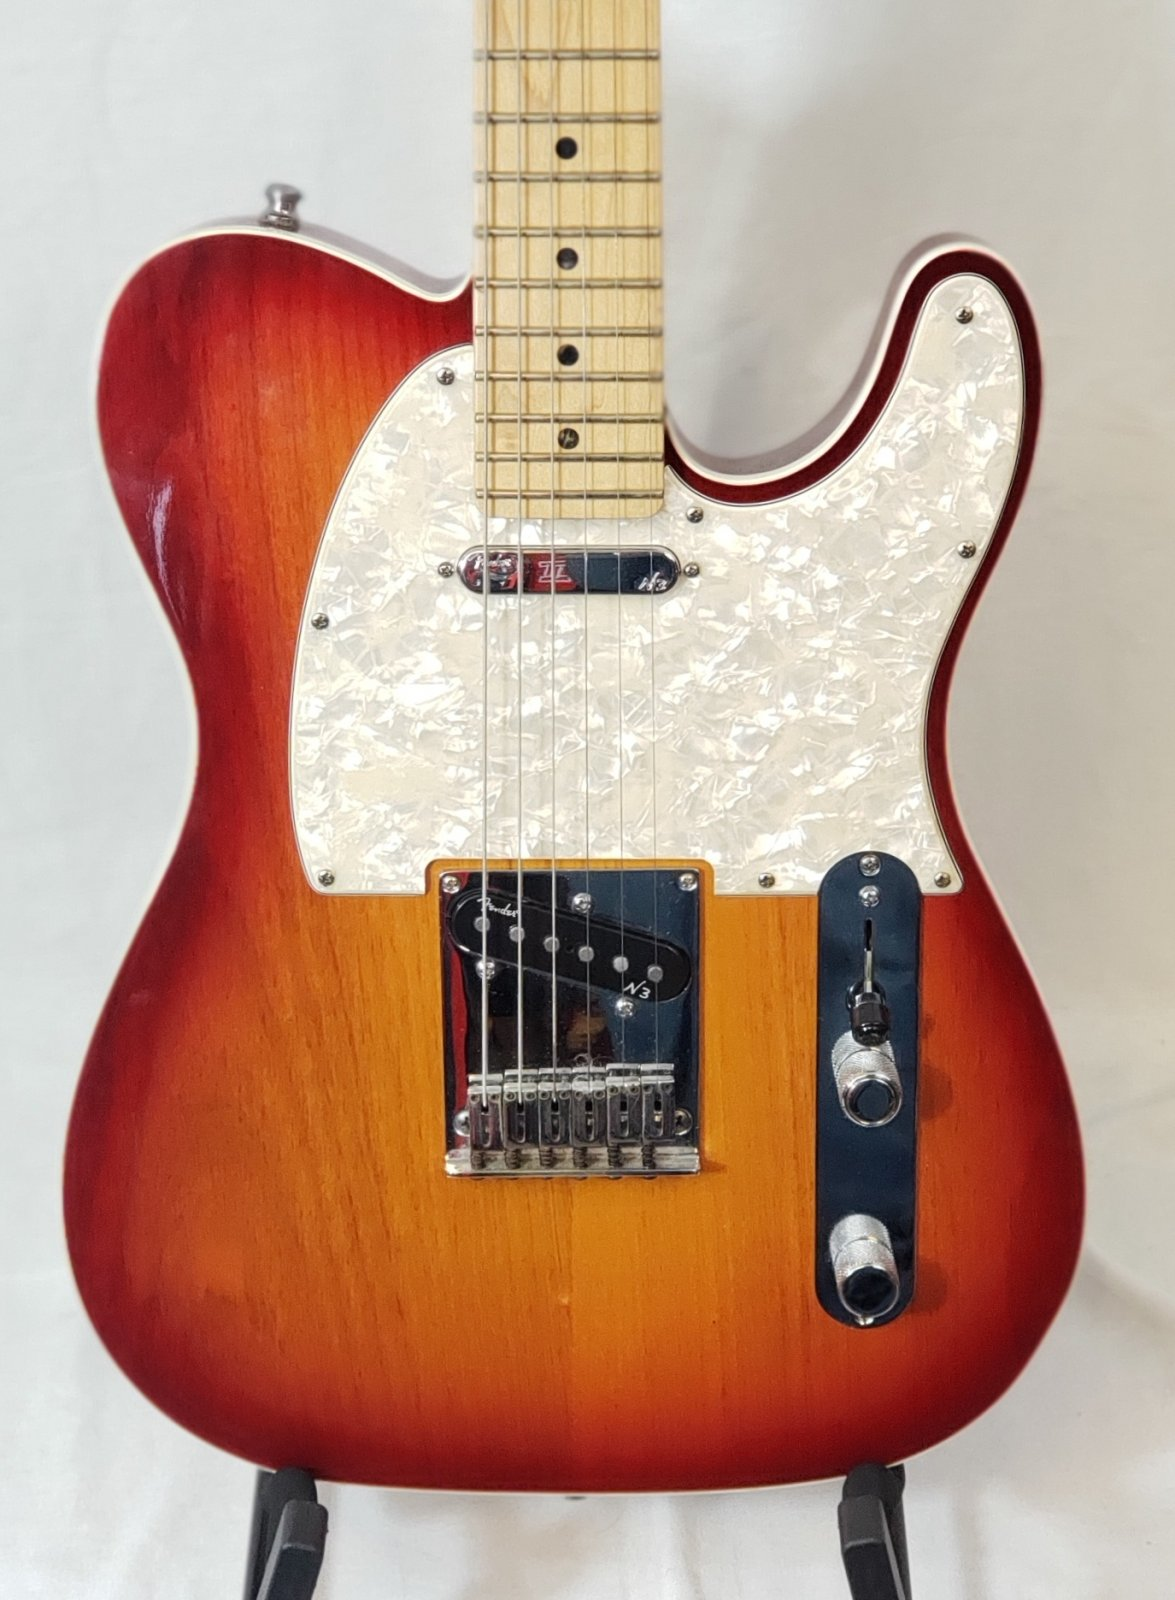 FENDER AMERICAN DELUXE TELECASTER RED BURST/MAPLE NECK WITH TWEED CASE